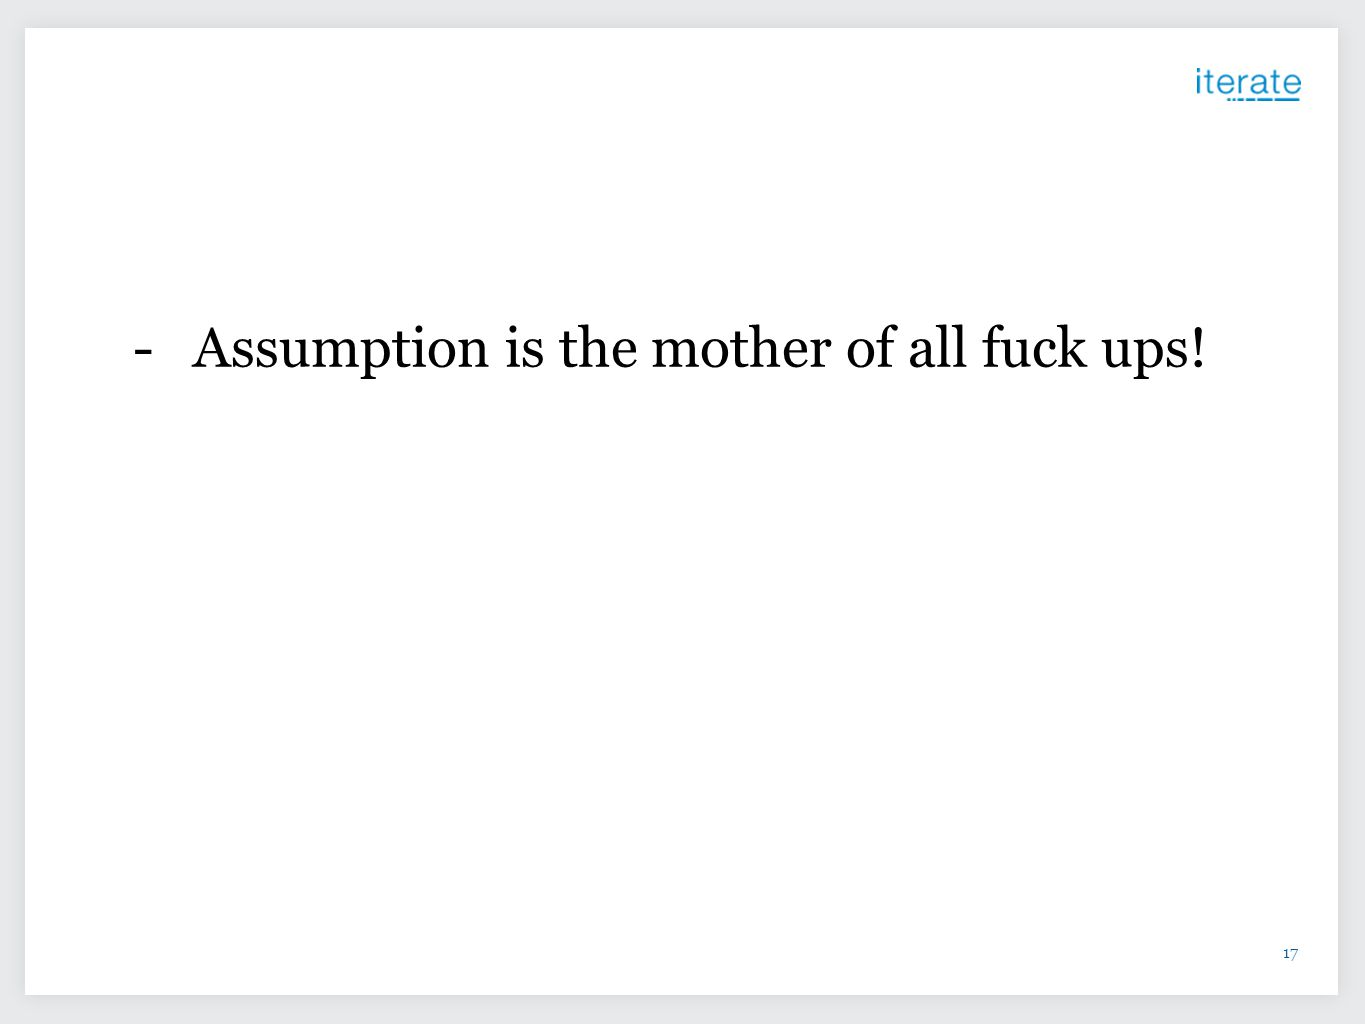 Assumption is the mother of all fuck ups!